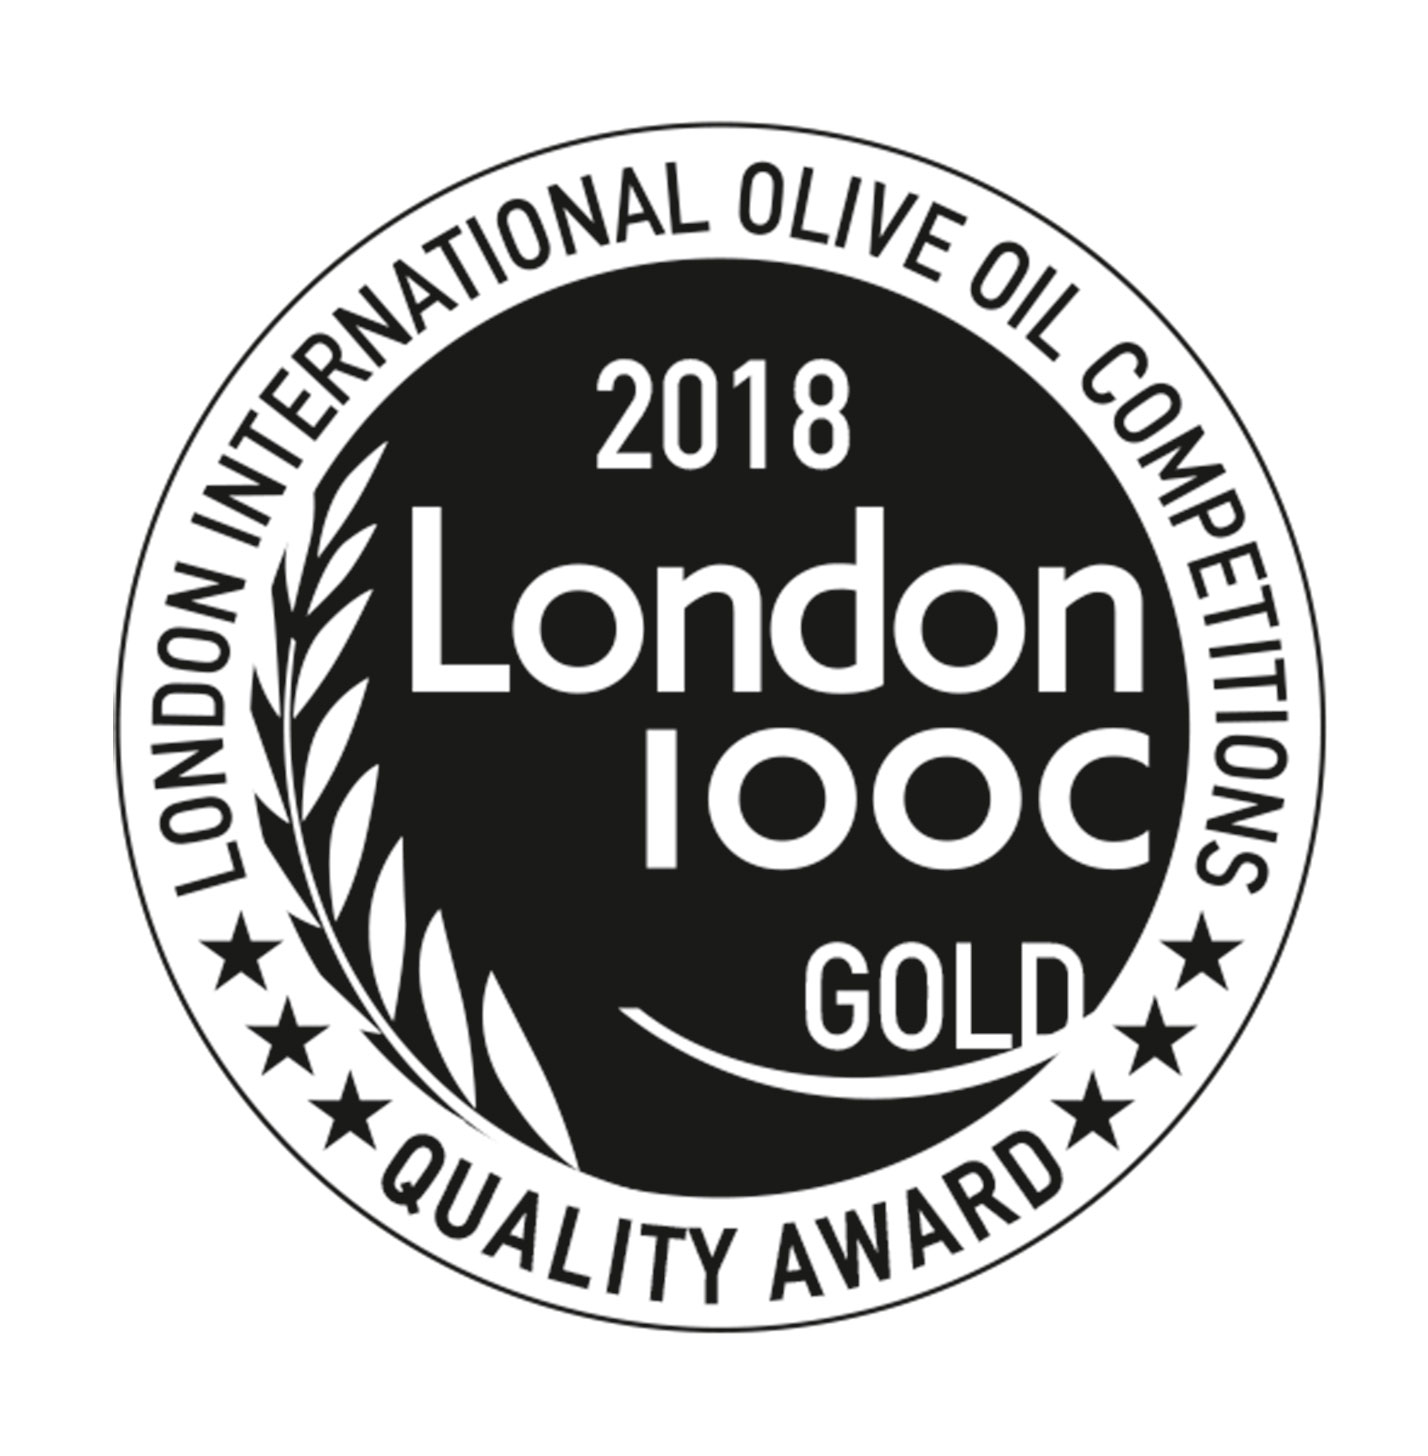 gold news quality konoshill medal iooc index london en londoniooc